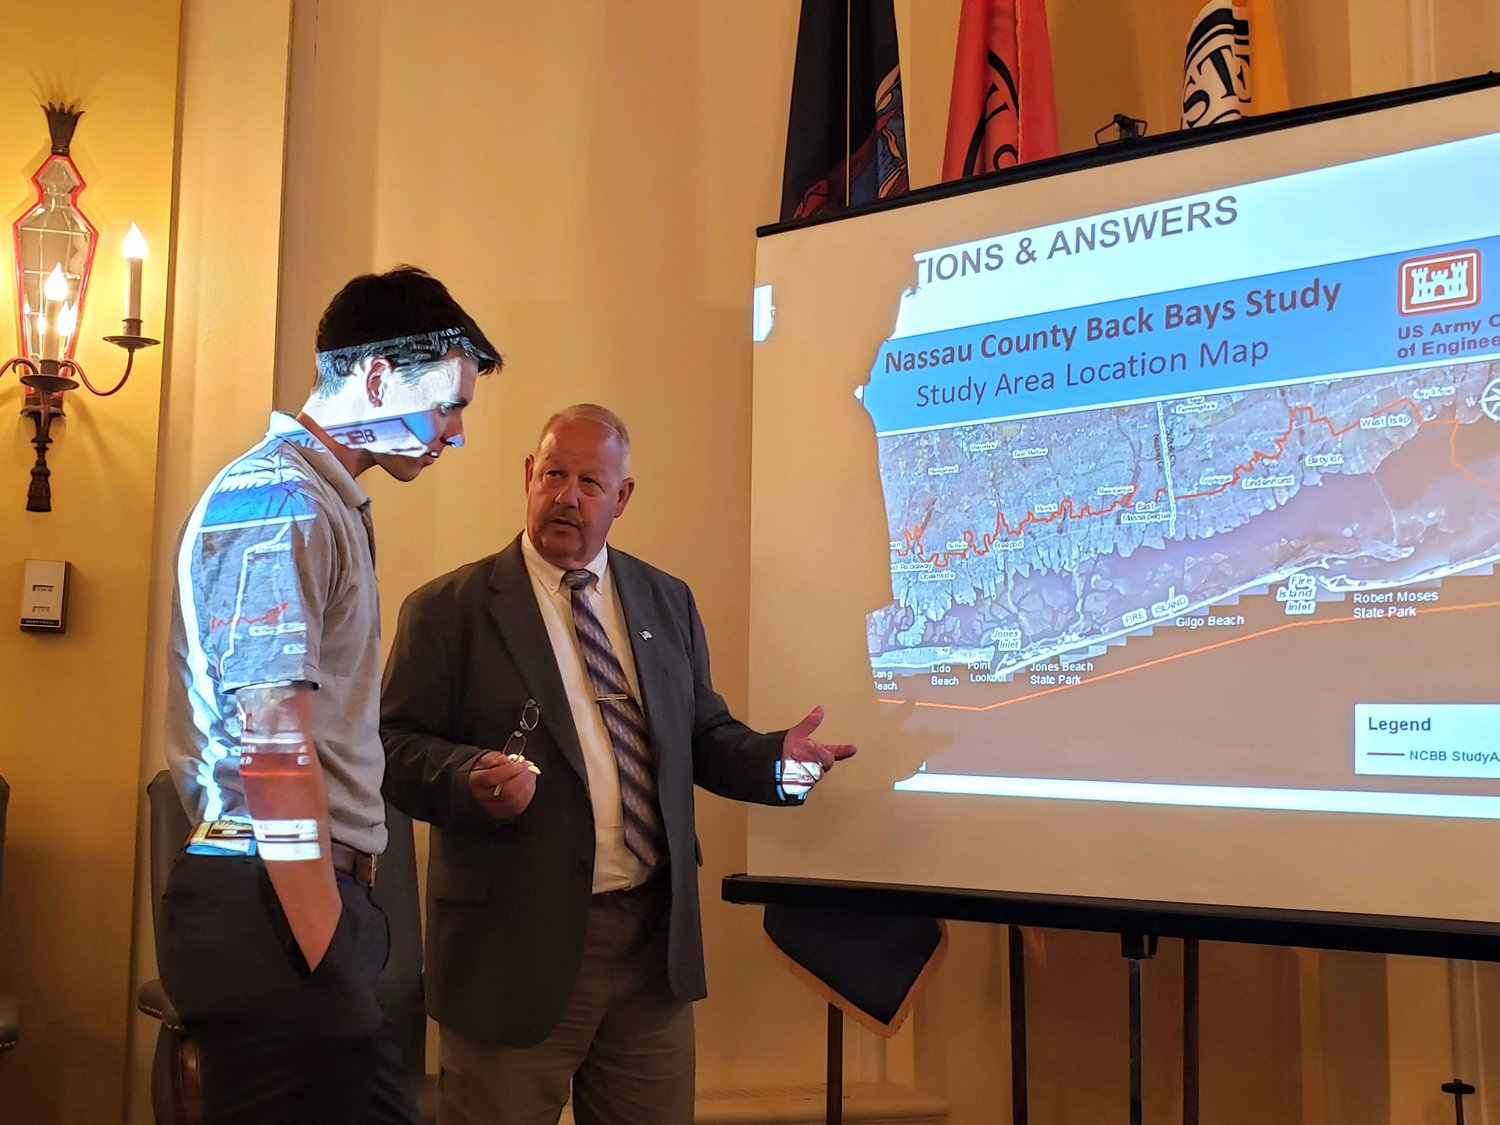 Rob Hampson, a hydraulic/coastal engineer with the Army Corps of Enginners, left, reviewed the Back Bays study with Freeport Mayor Robert Kennedy.